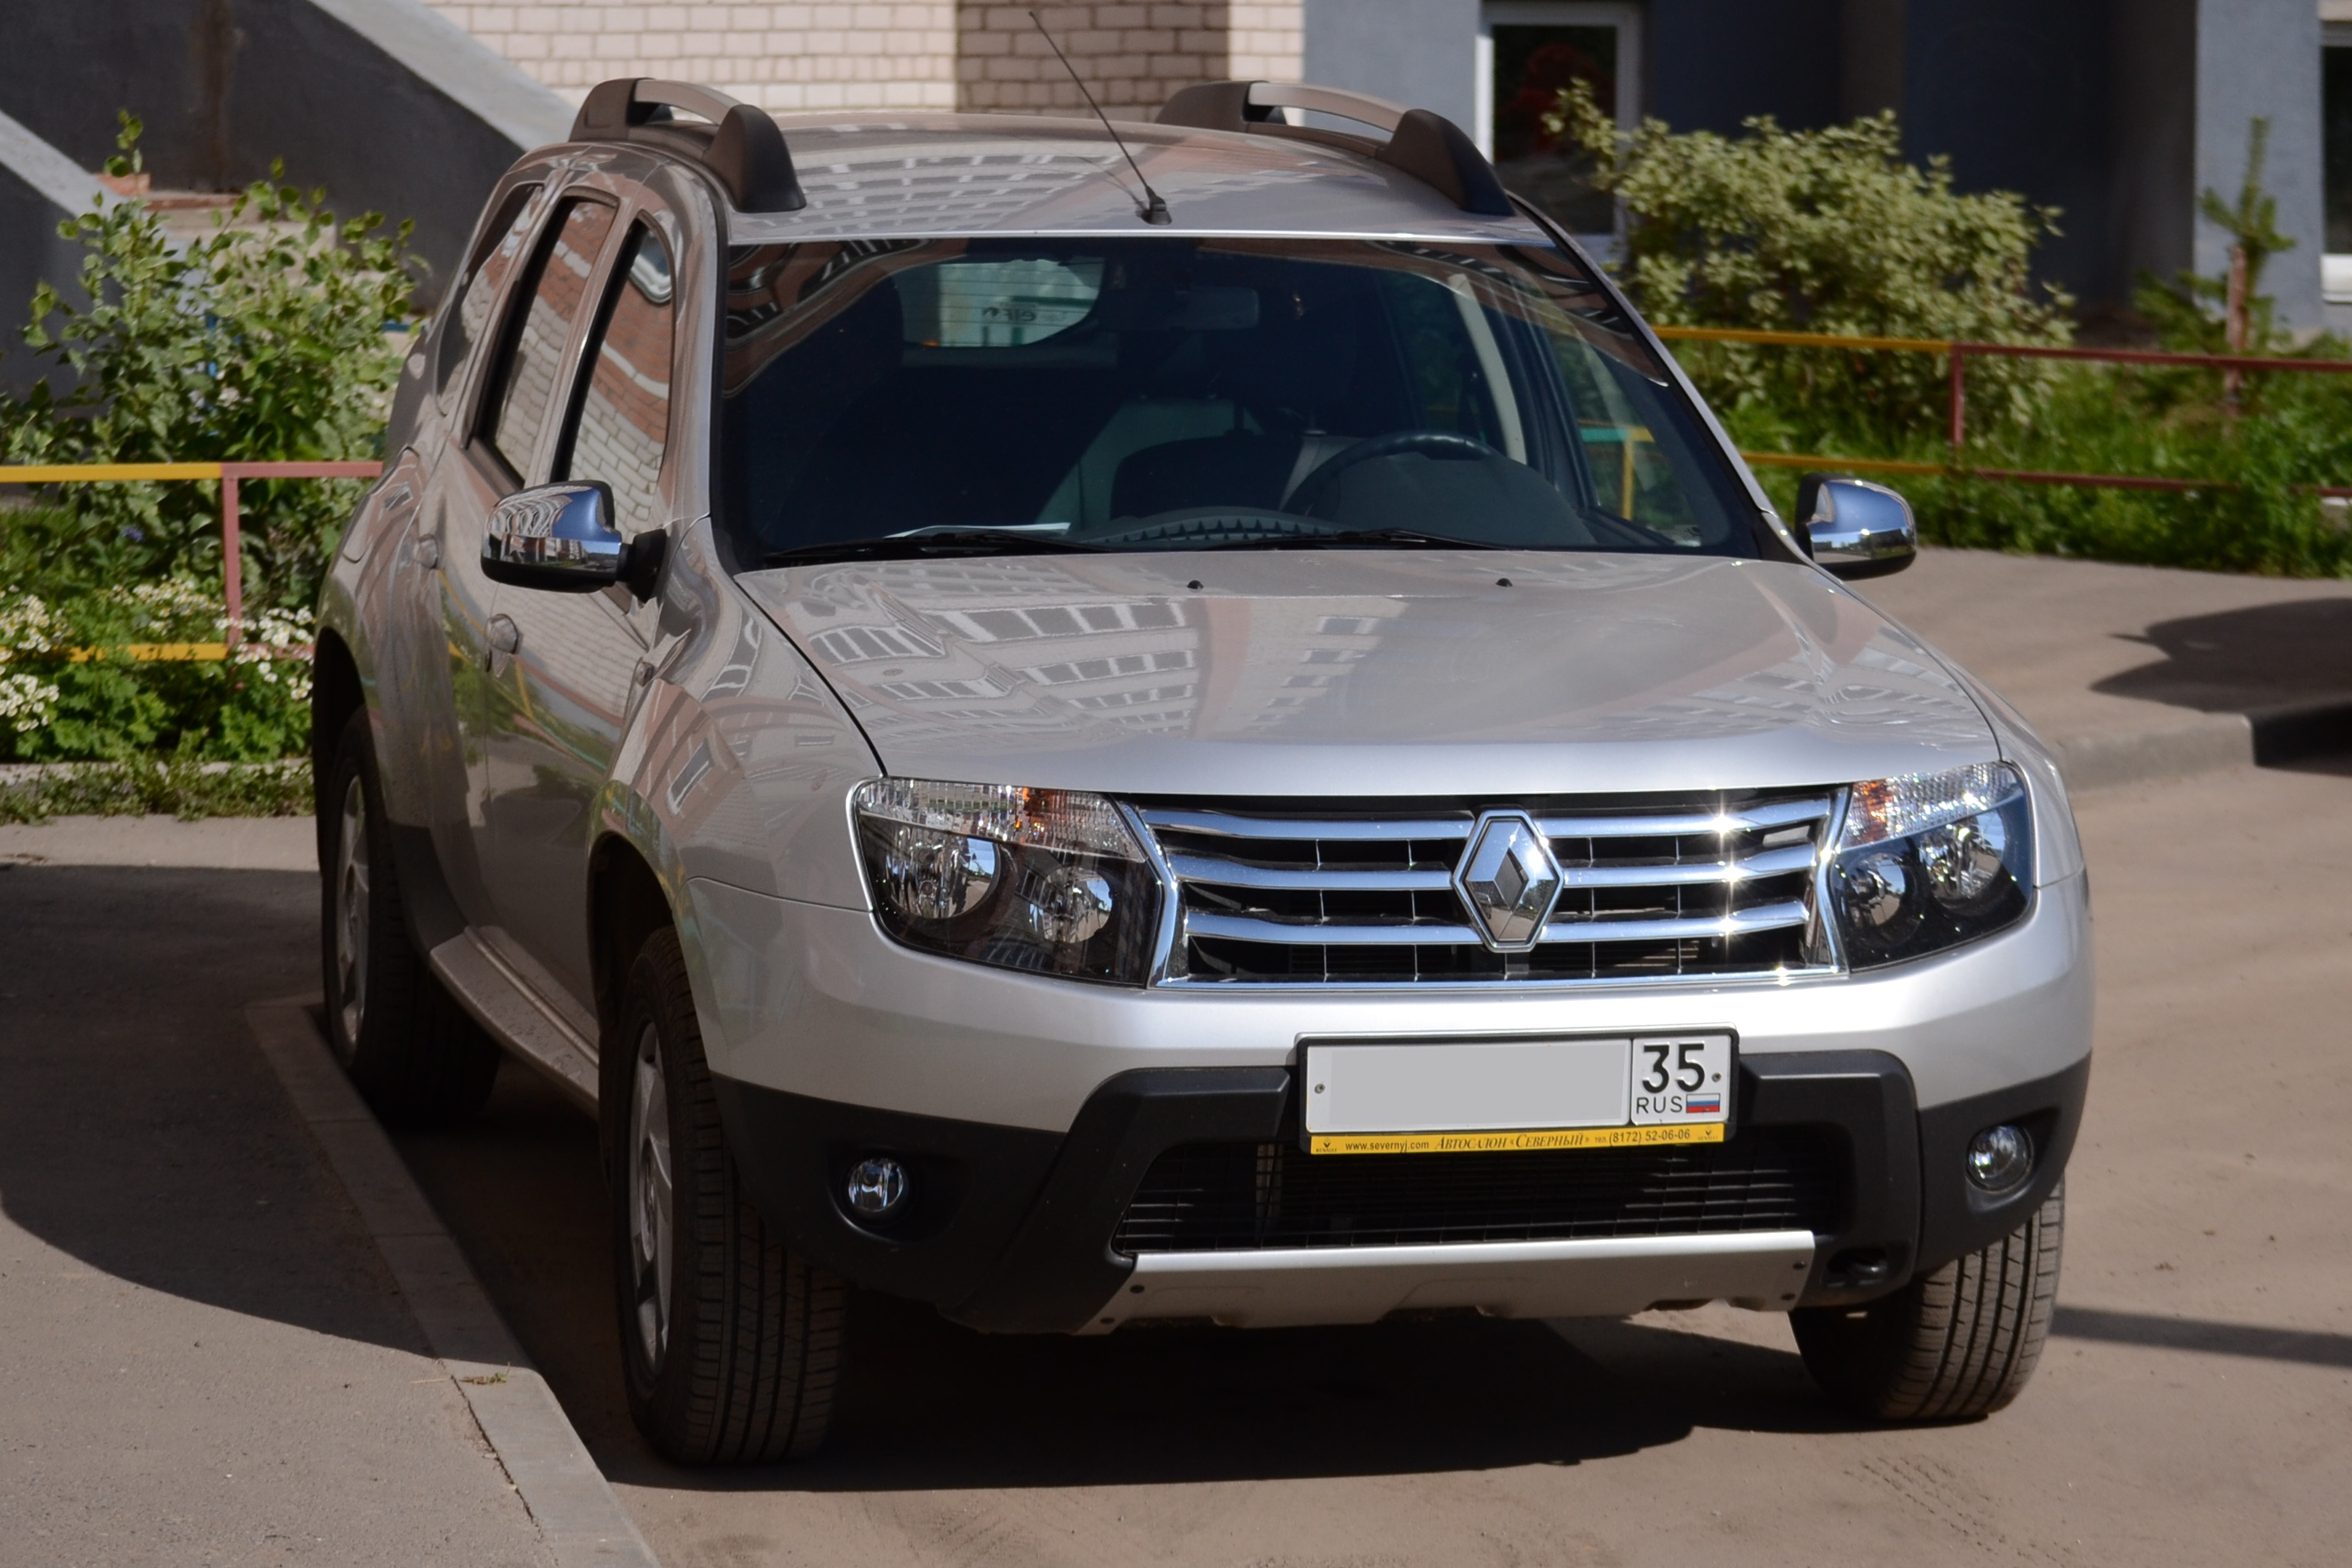 Renault Duster Image Wallpapers Download